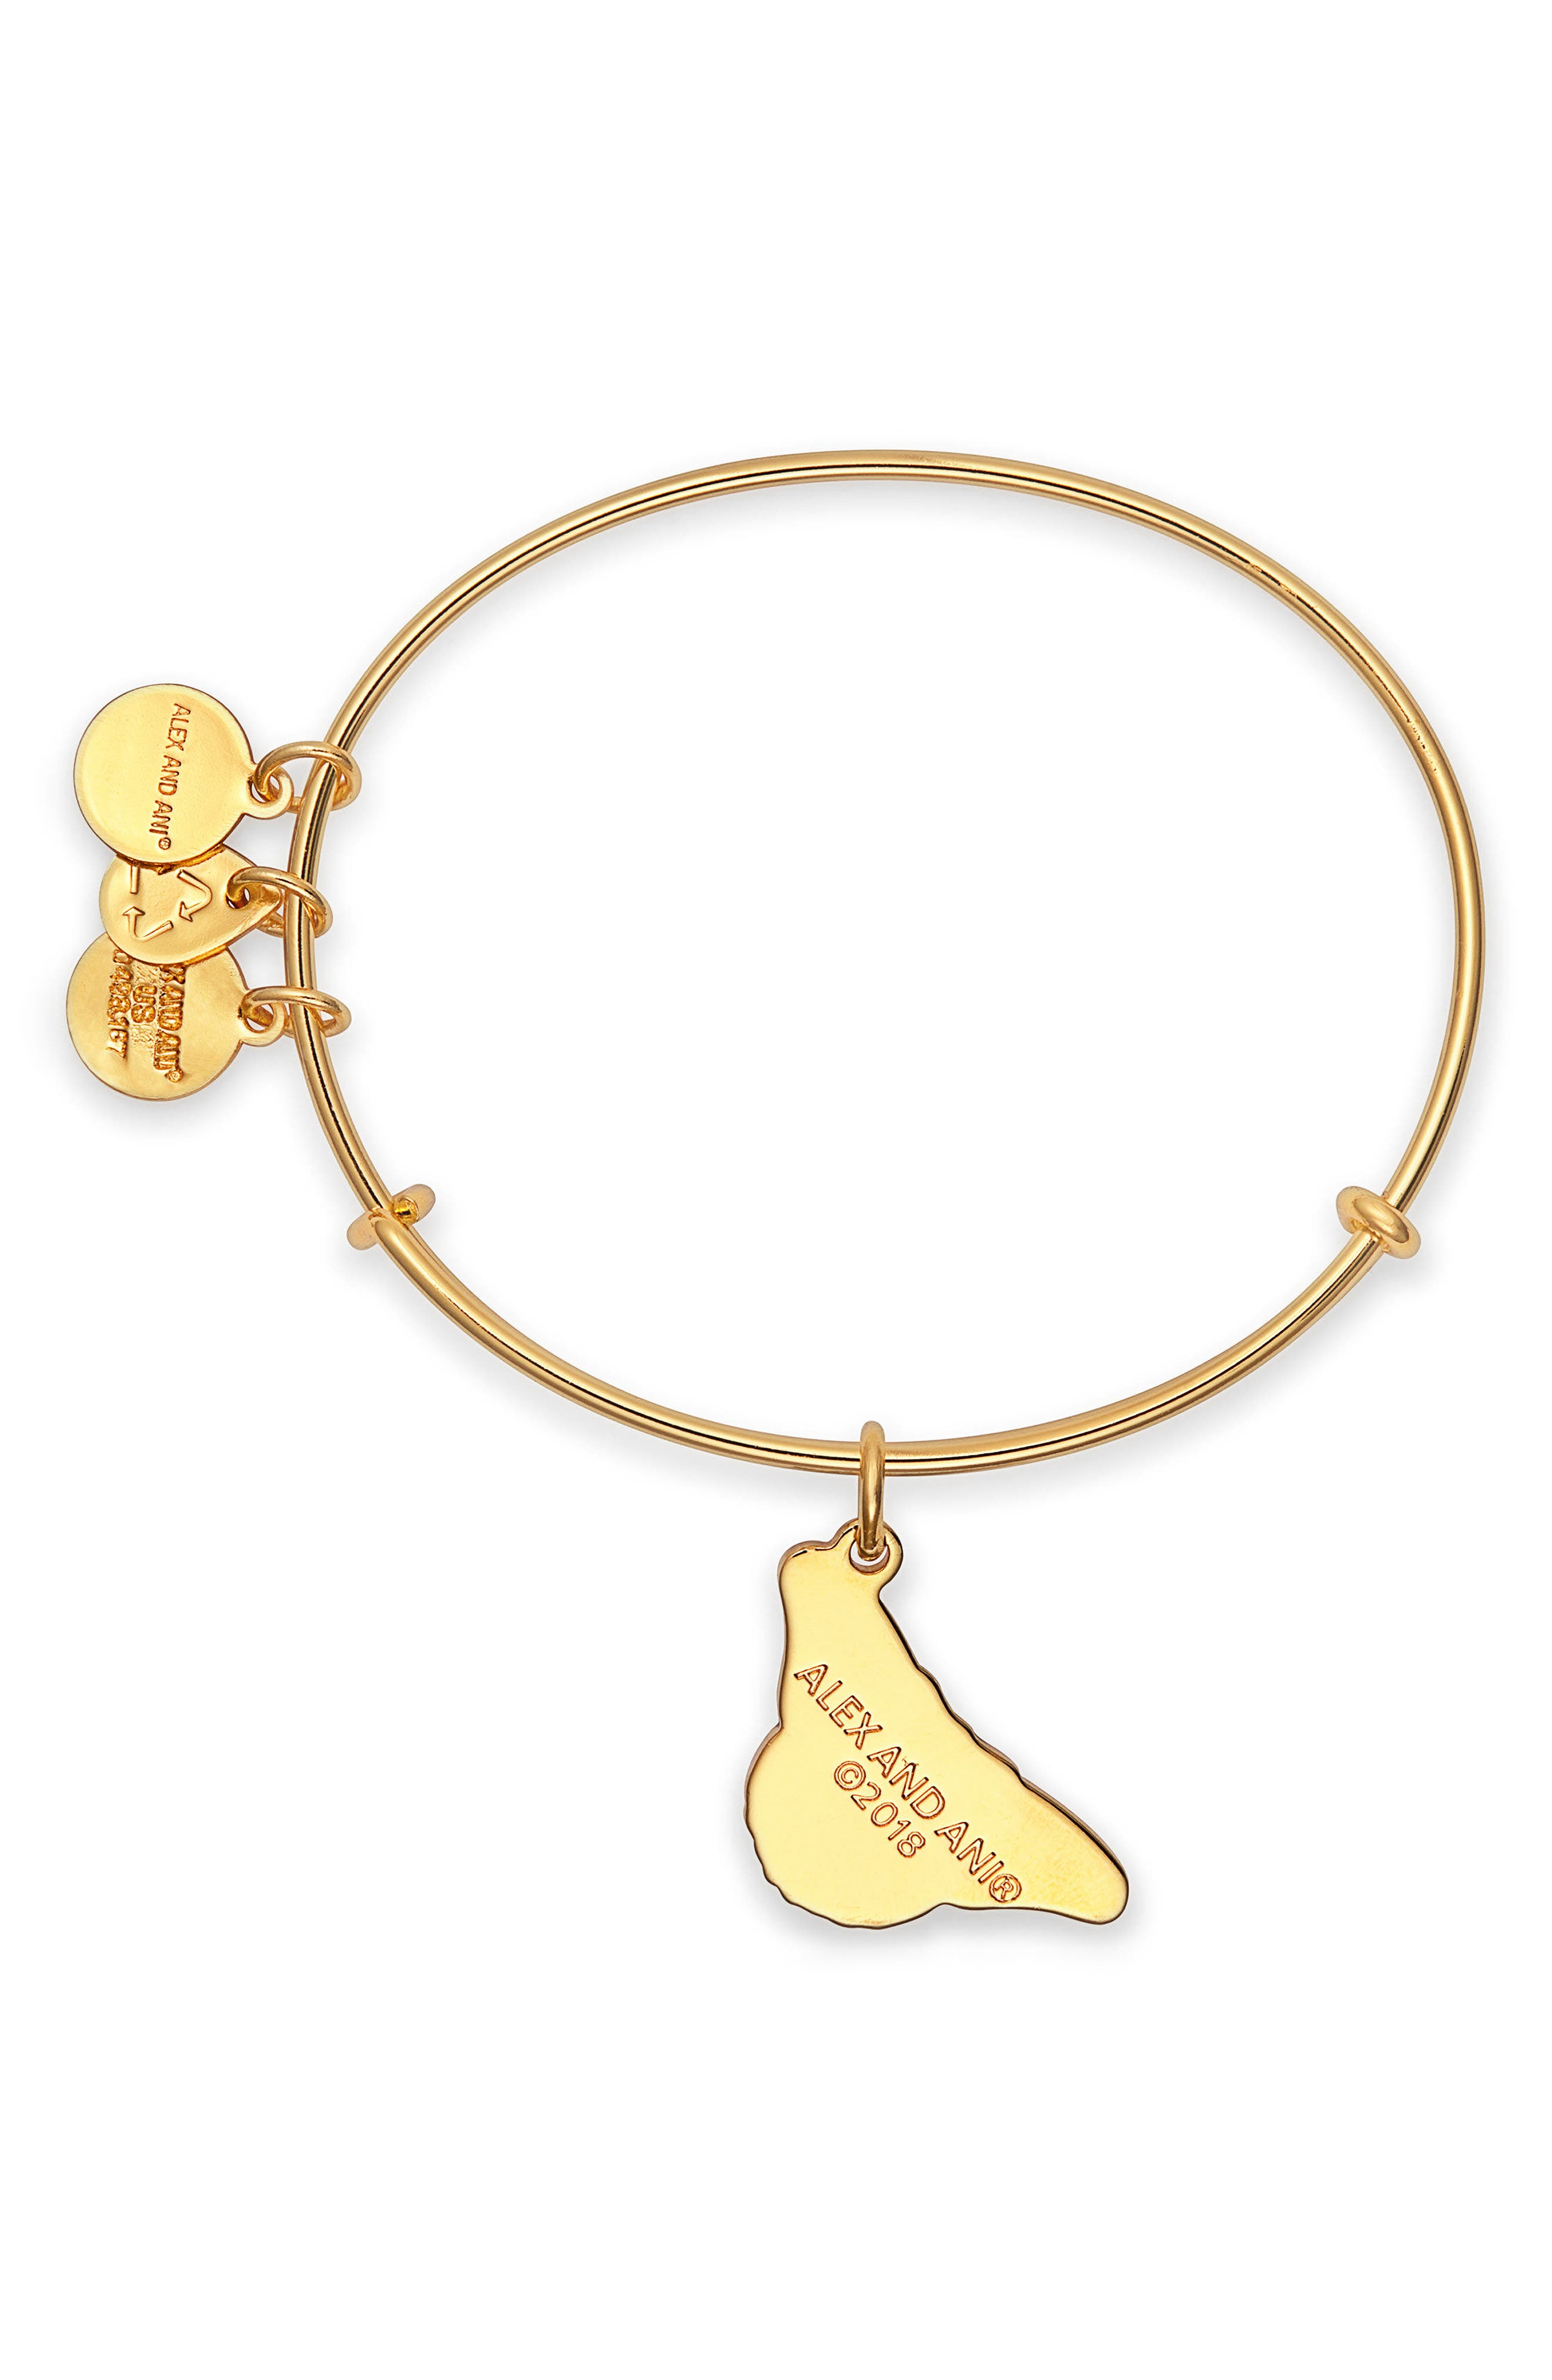 Charity by Design Monarch Butterfly Charm Bracelet,                             Alternate thumbnail 2, color,                             Gold